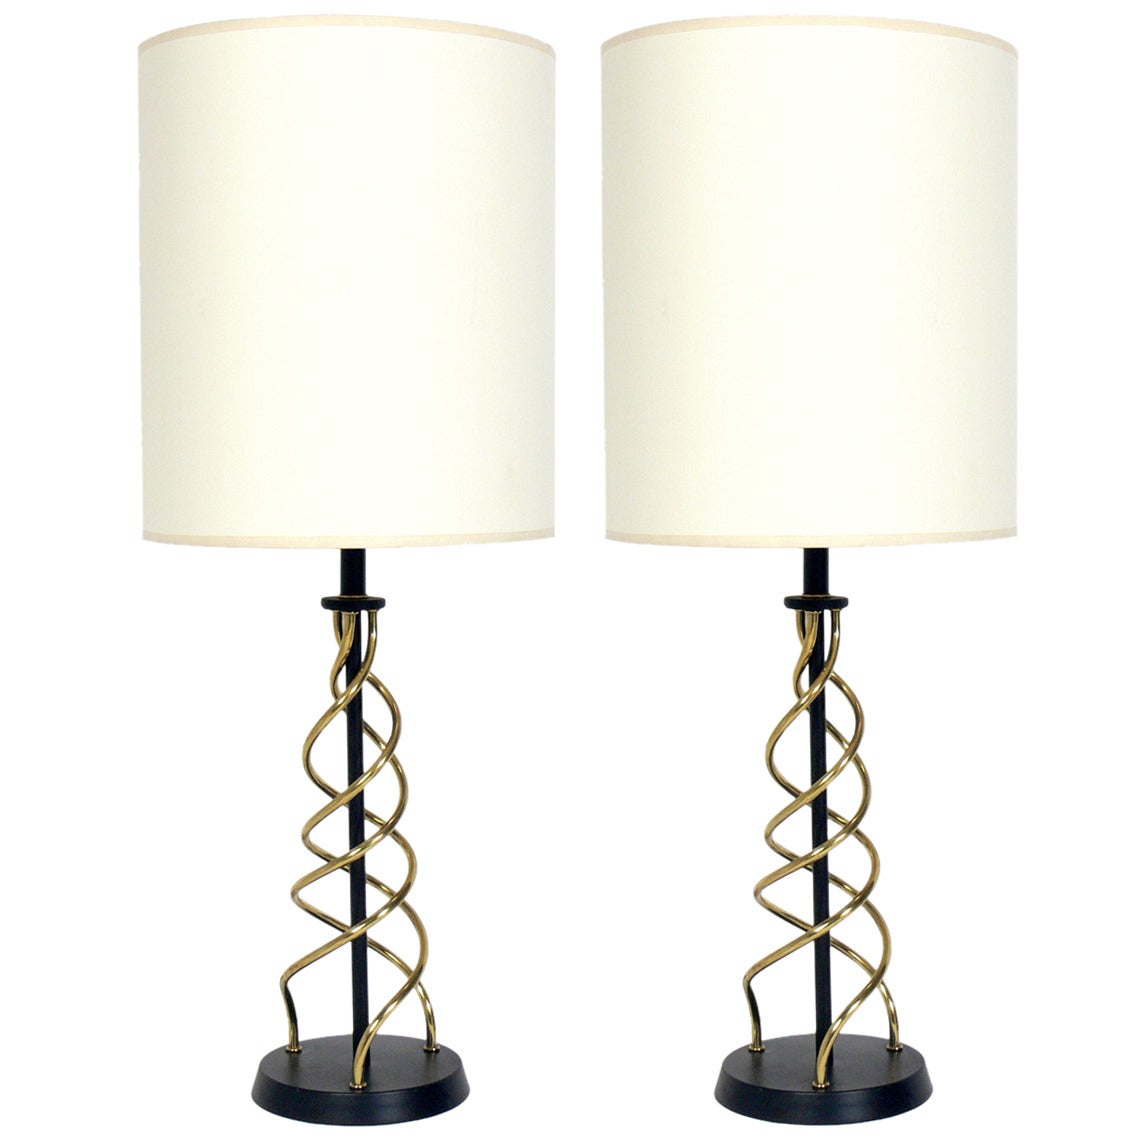 Pair of Sculptural Black and Brass Swirl Lamps